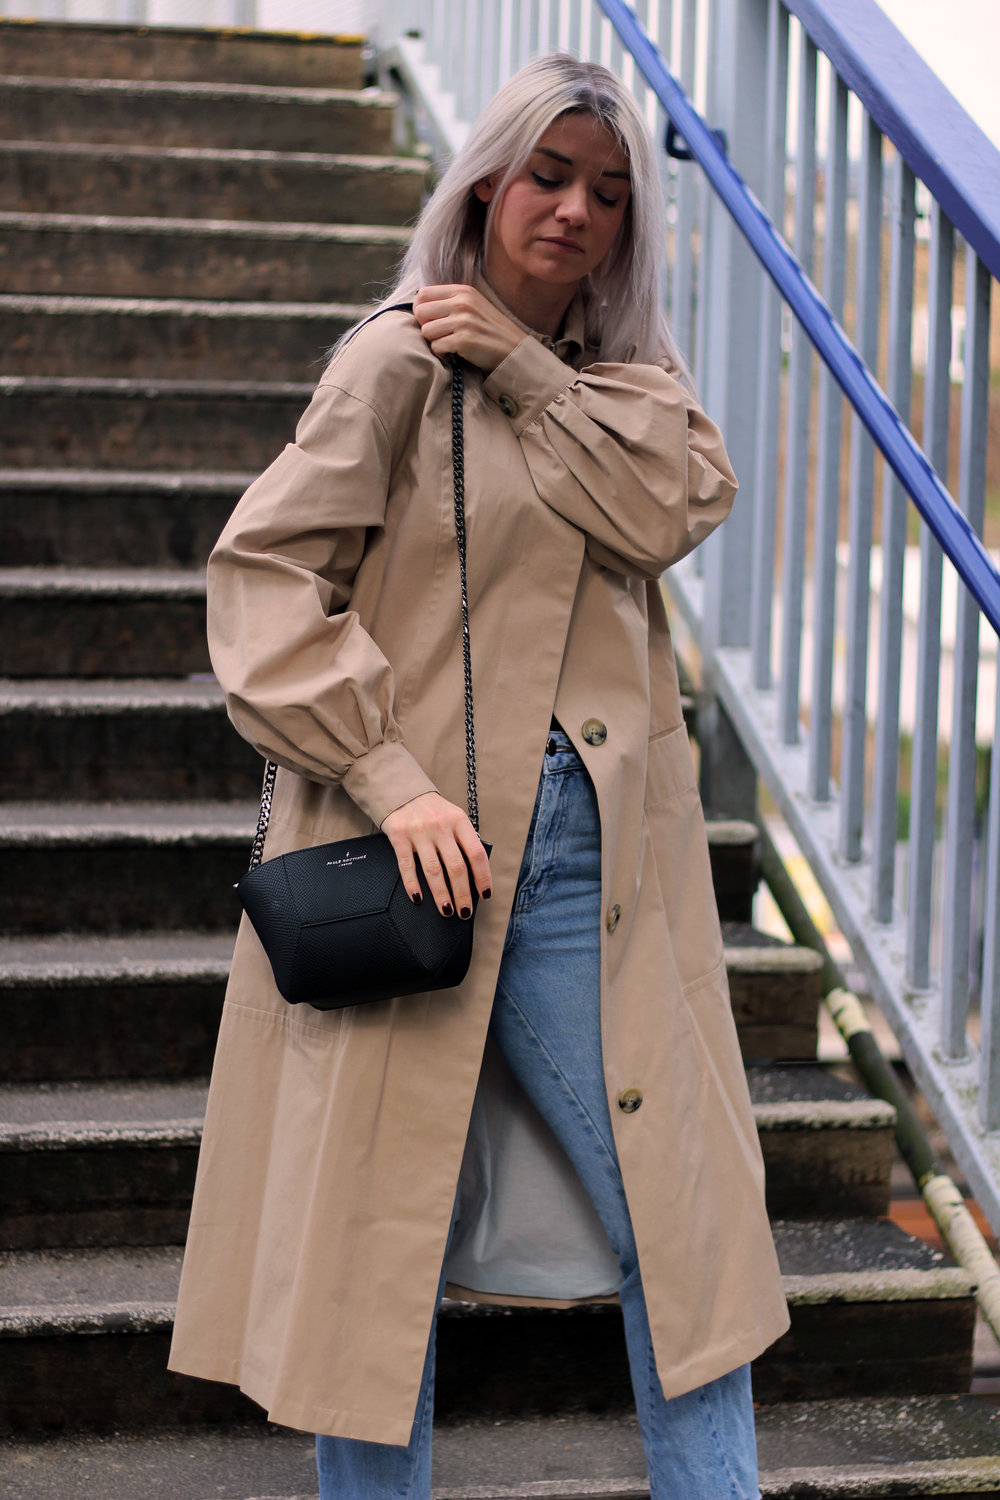 TRENCH COAT, PAULS BOUTIQUE BAG, GIVEAWAY, TOPSHOP JEANS 4